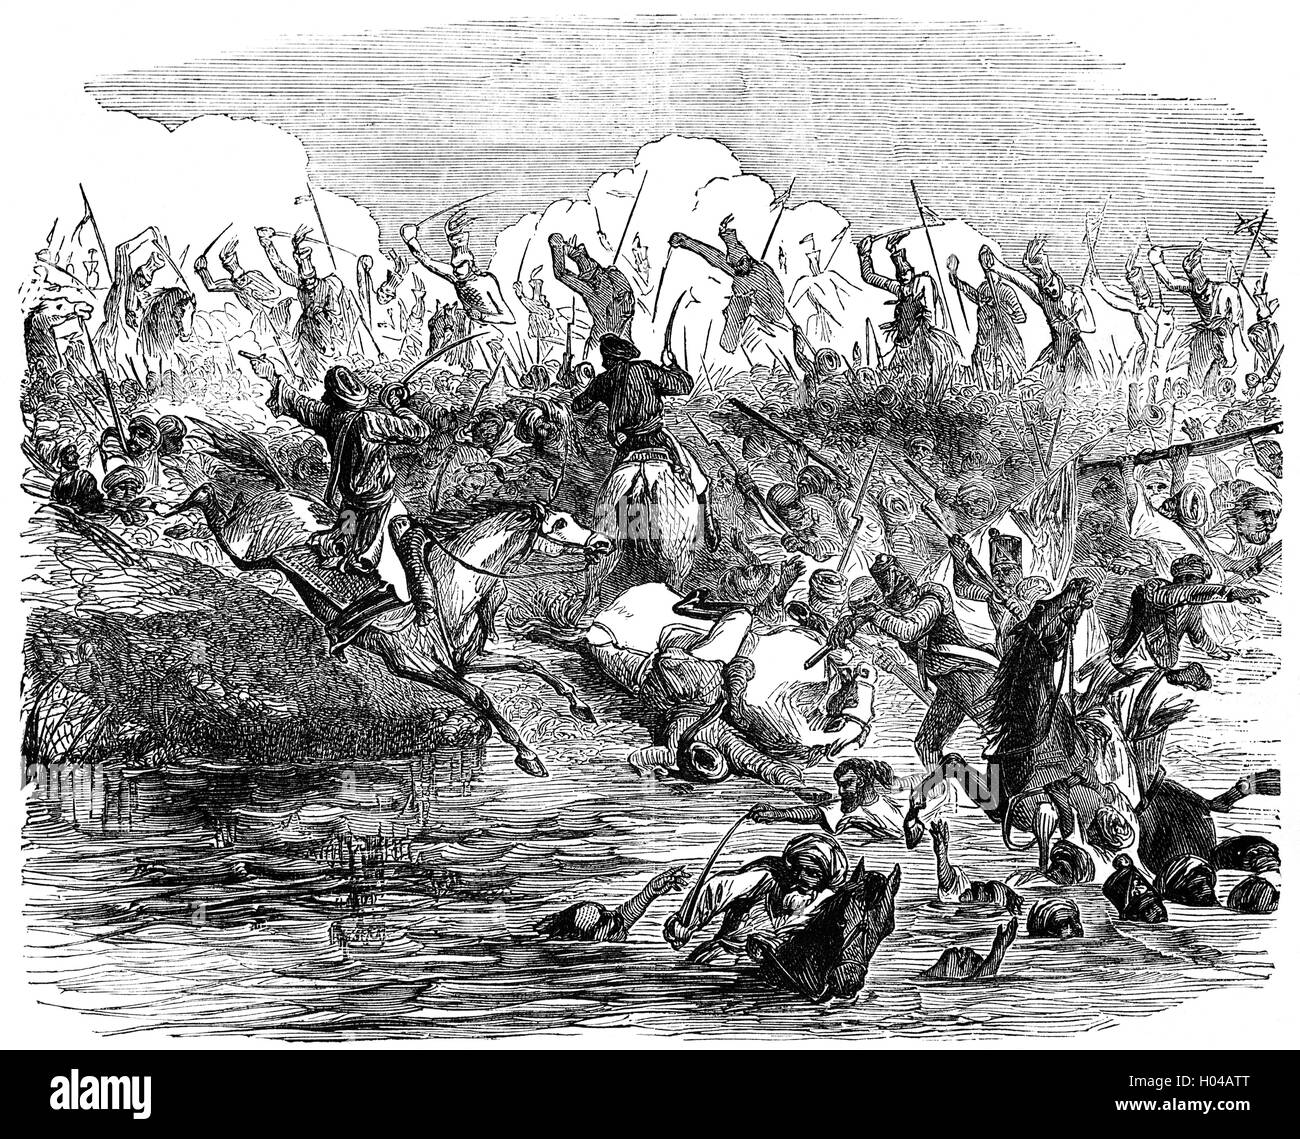 The British Army lead by Colonel Sir Edward Harris Greathed (1812 – 1881) chasing mutineers in the Battle of Agra - Stock Image